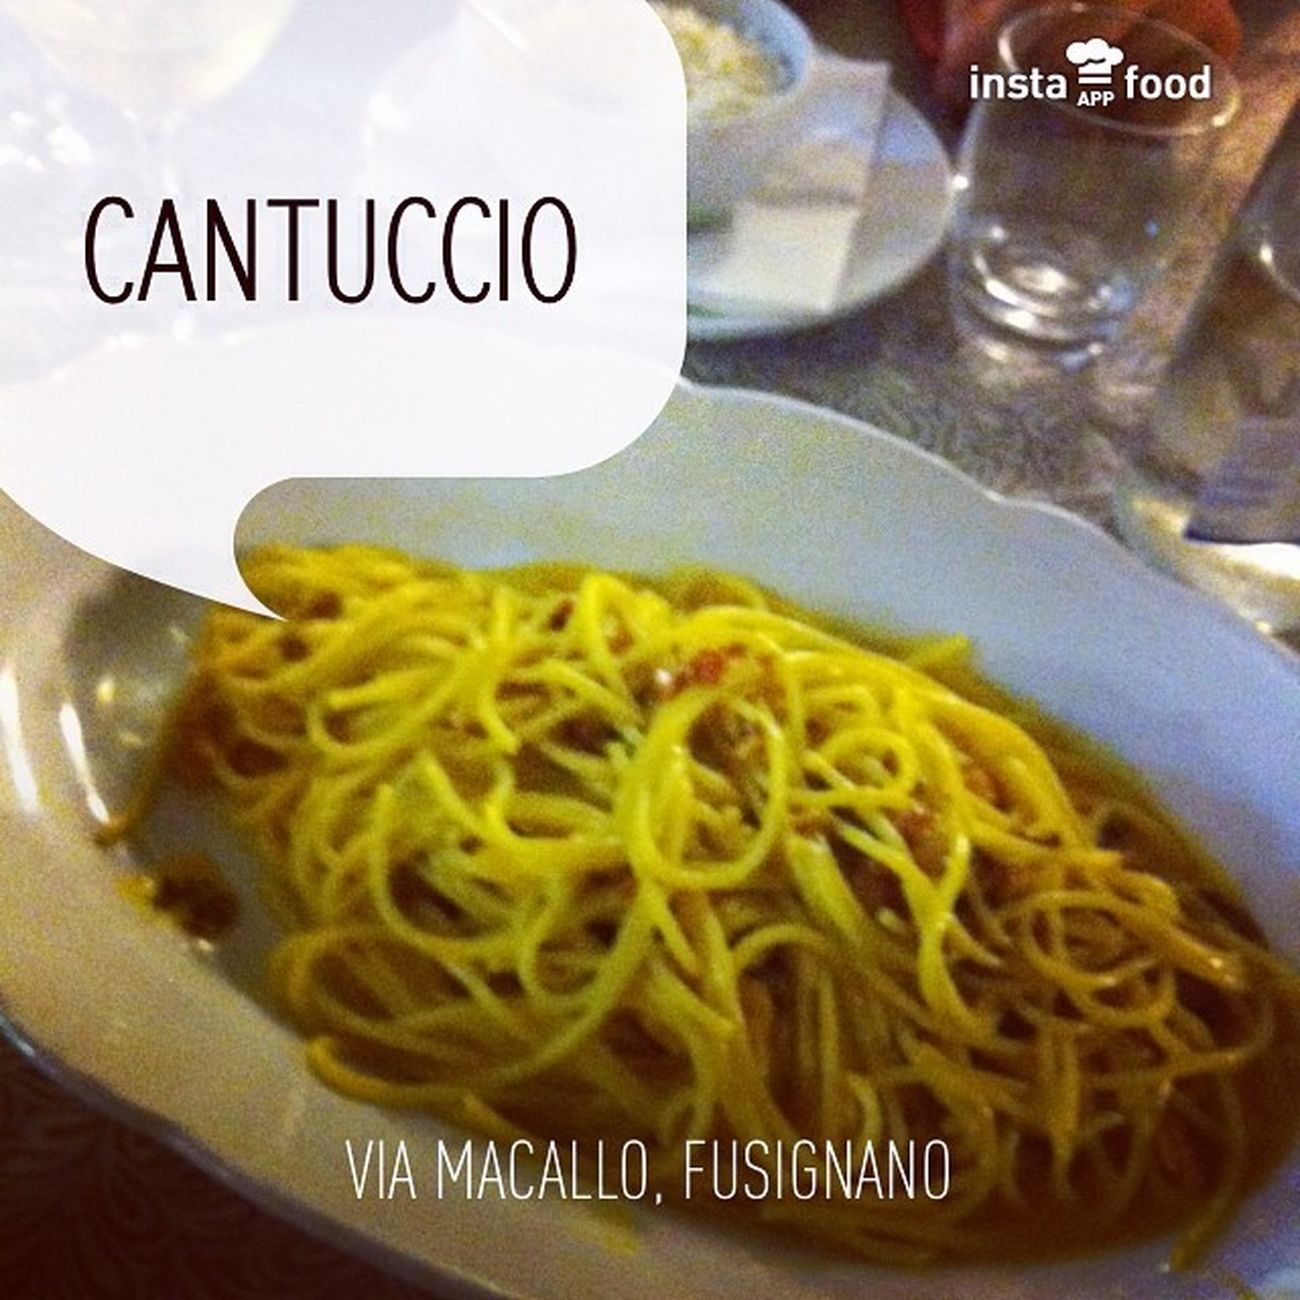 @instafoodapp Instafood Instafoodapp Instagood Food Foodporn Delicious Eating Foodpics Foodgasm Foodie Tasty Yummy Eat Hungry Love Italia Italy Fusignano Night